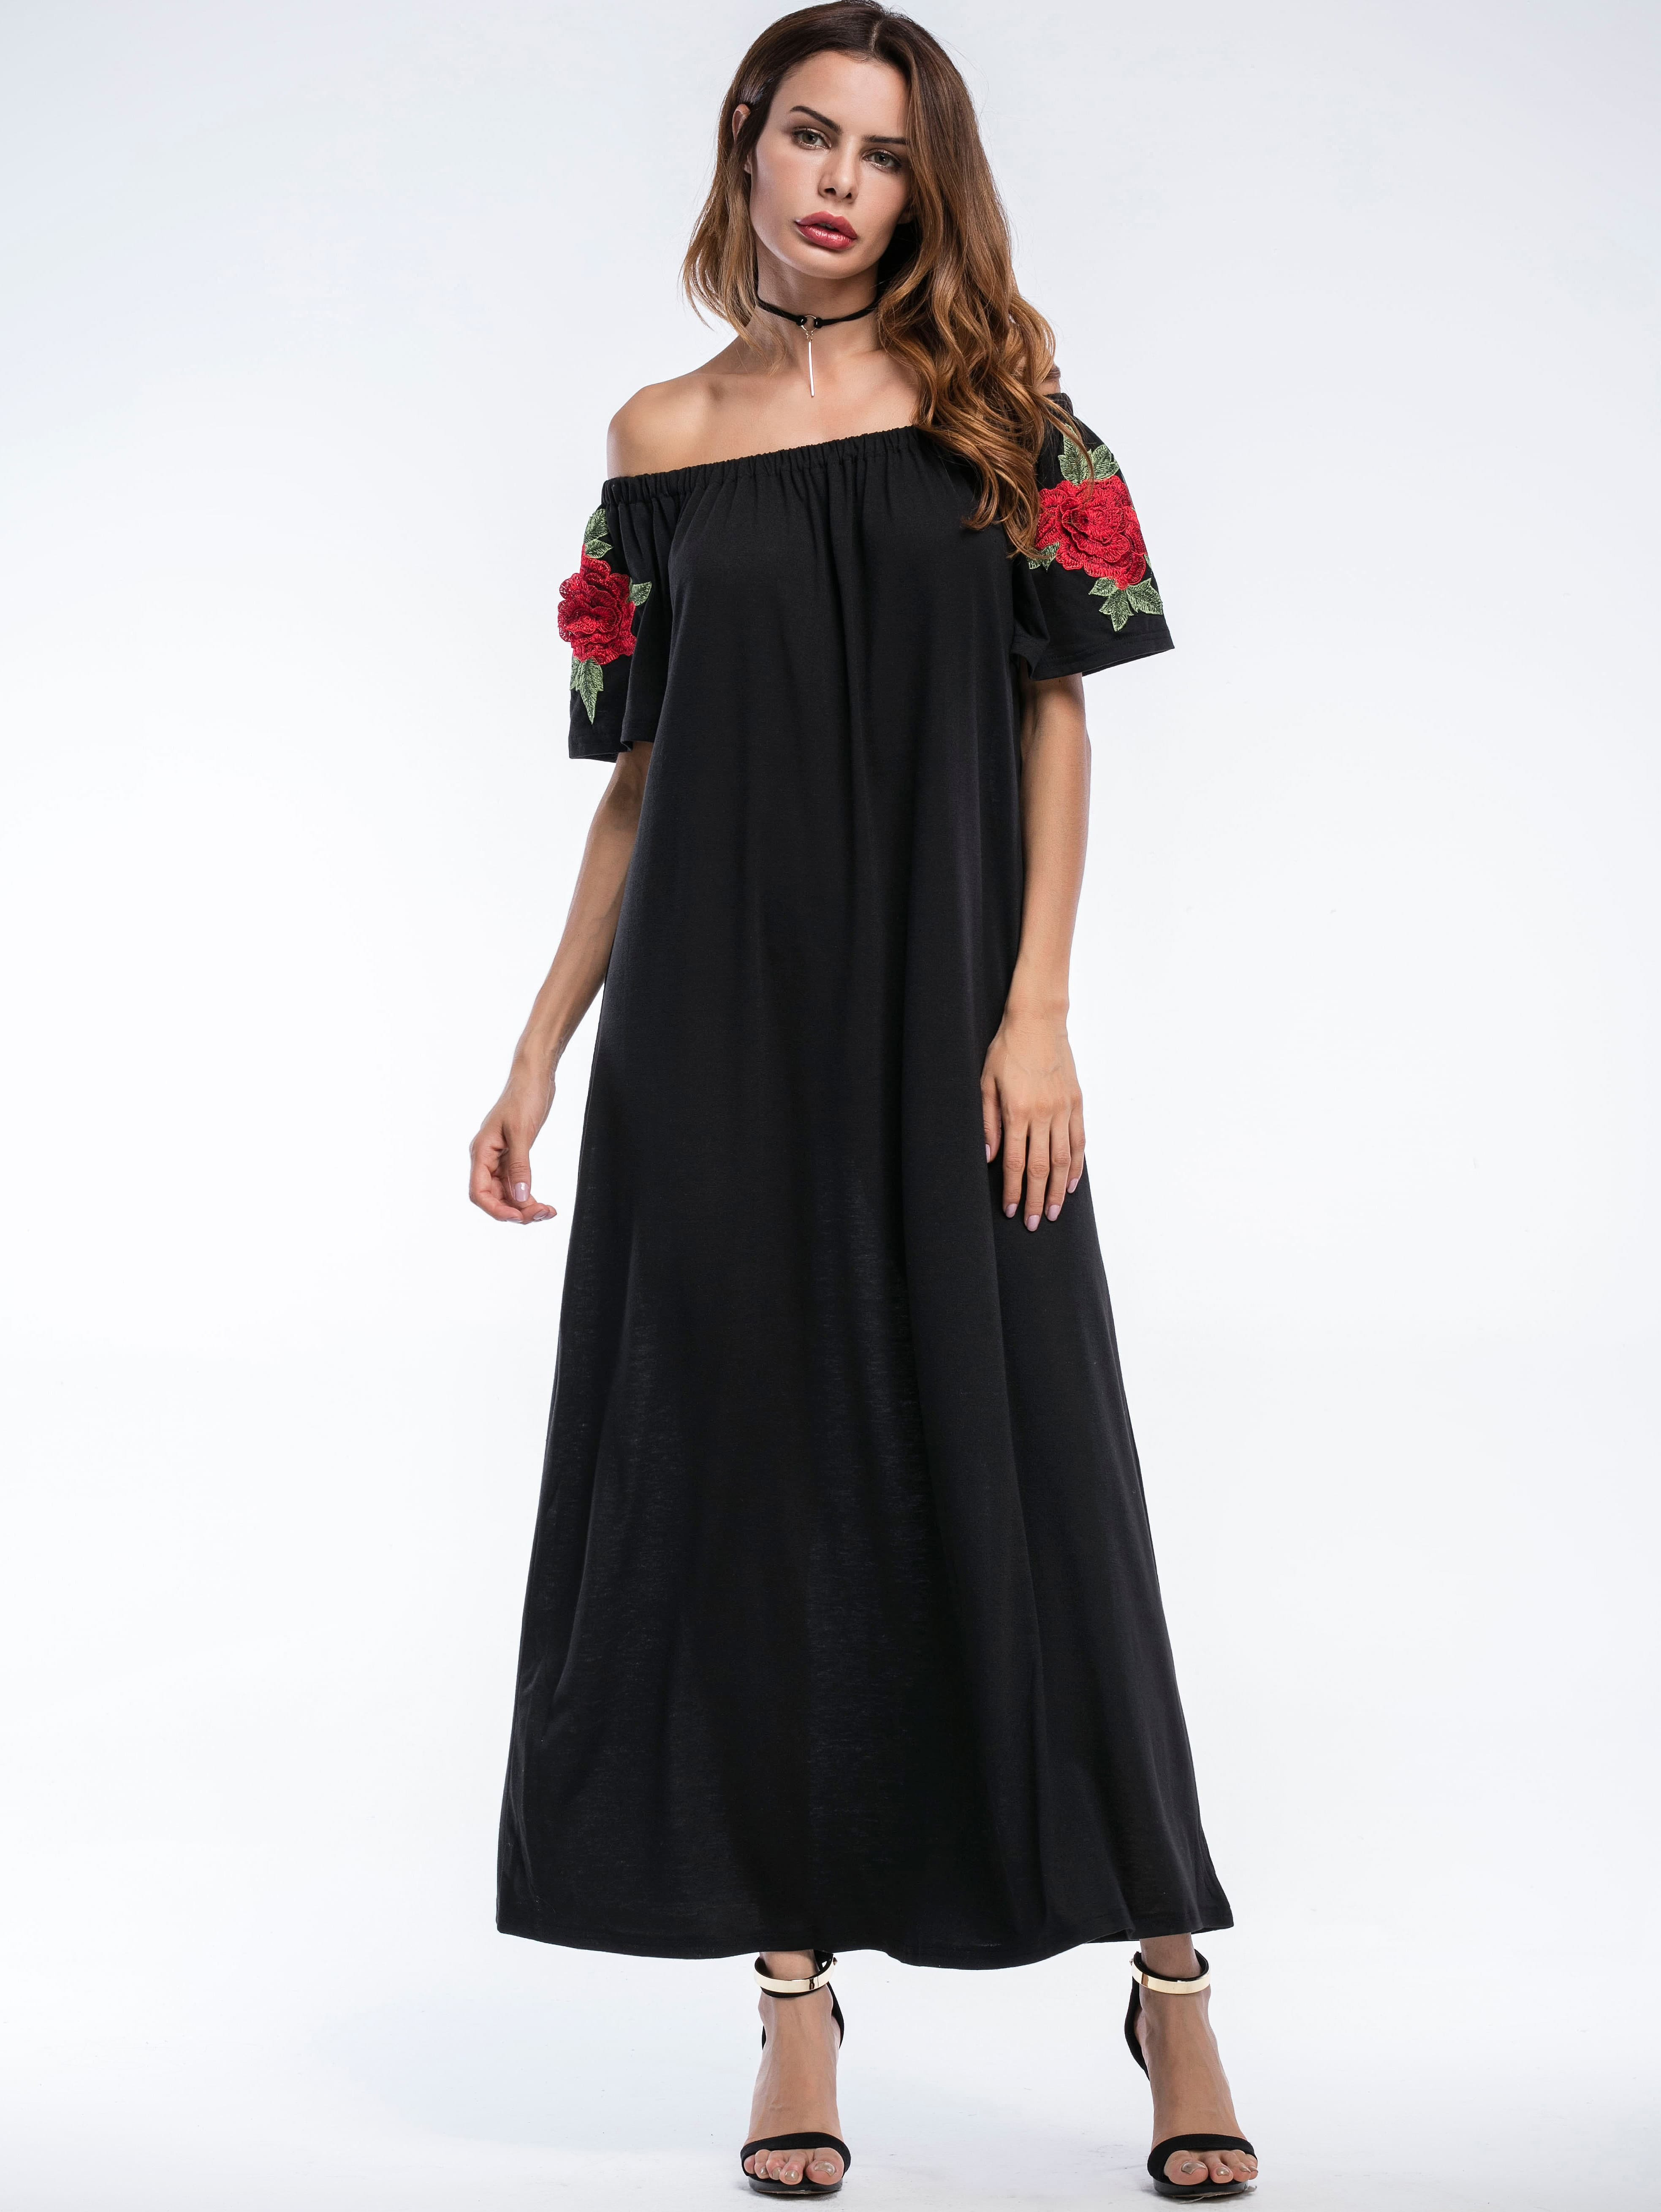 Bardot Embroidered Appliques Full Length Dress bardot embroidered appliques crop top